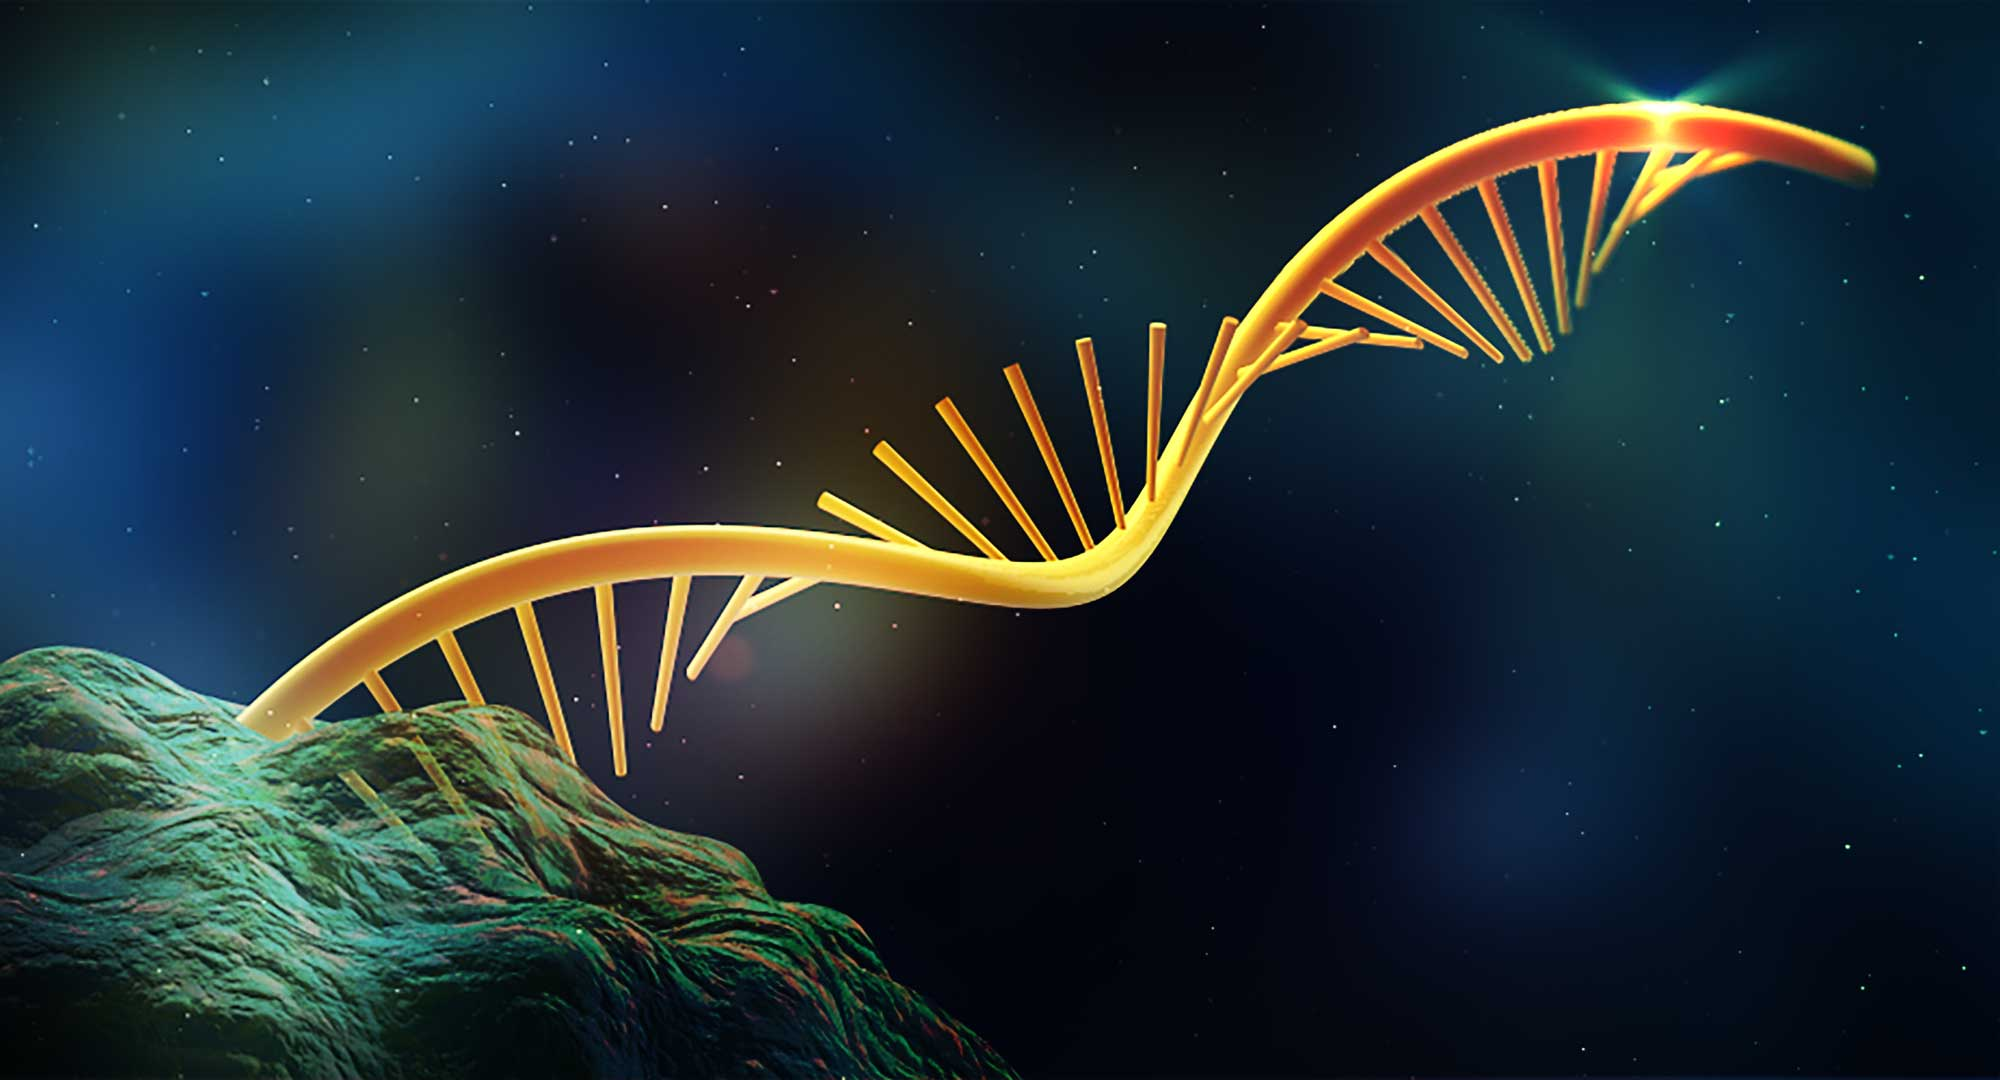 Artists rendering of an RNA structure. Image courtesy: Nils Walter